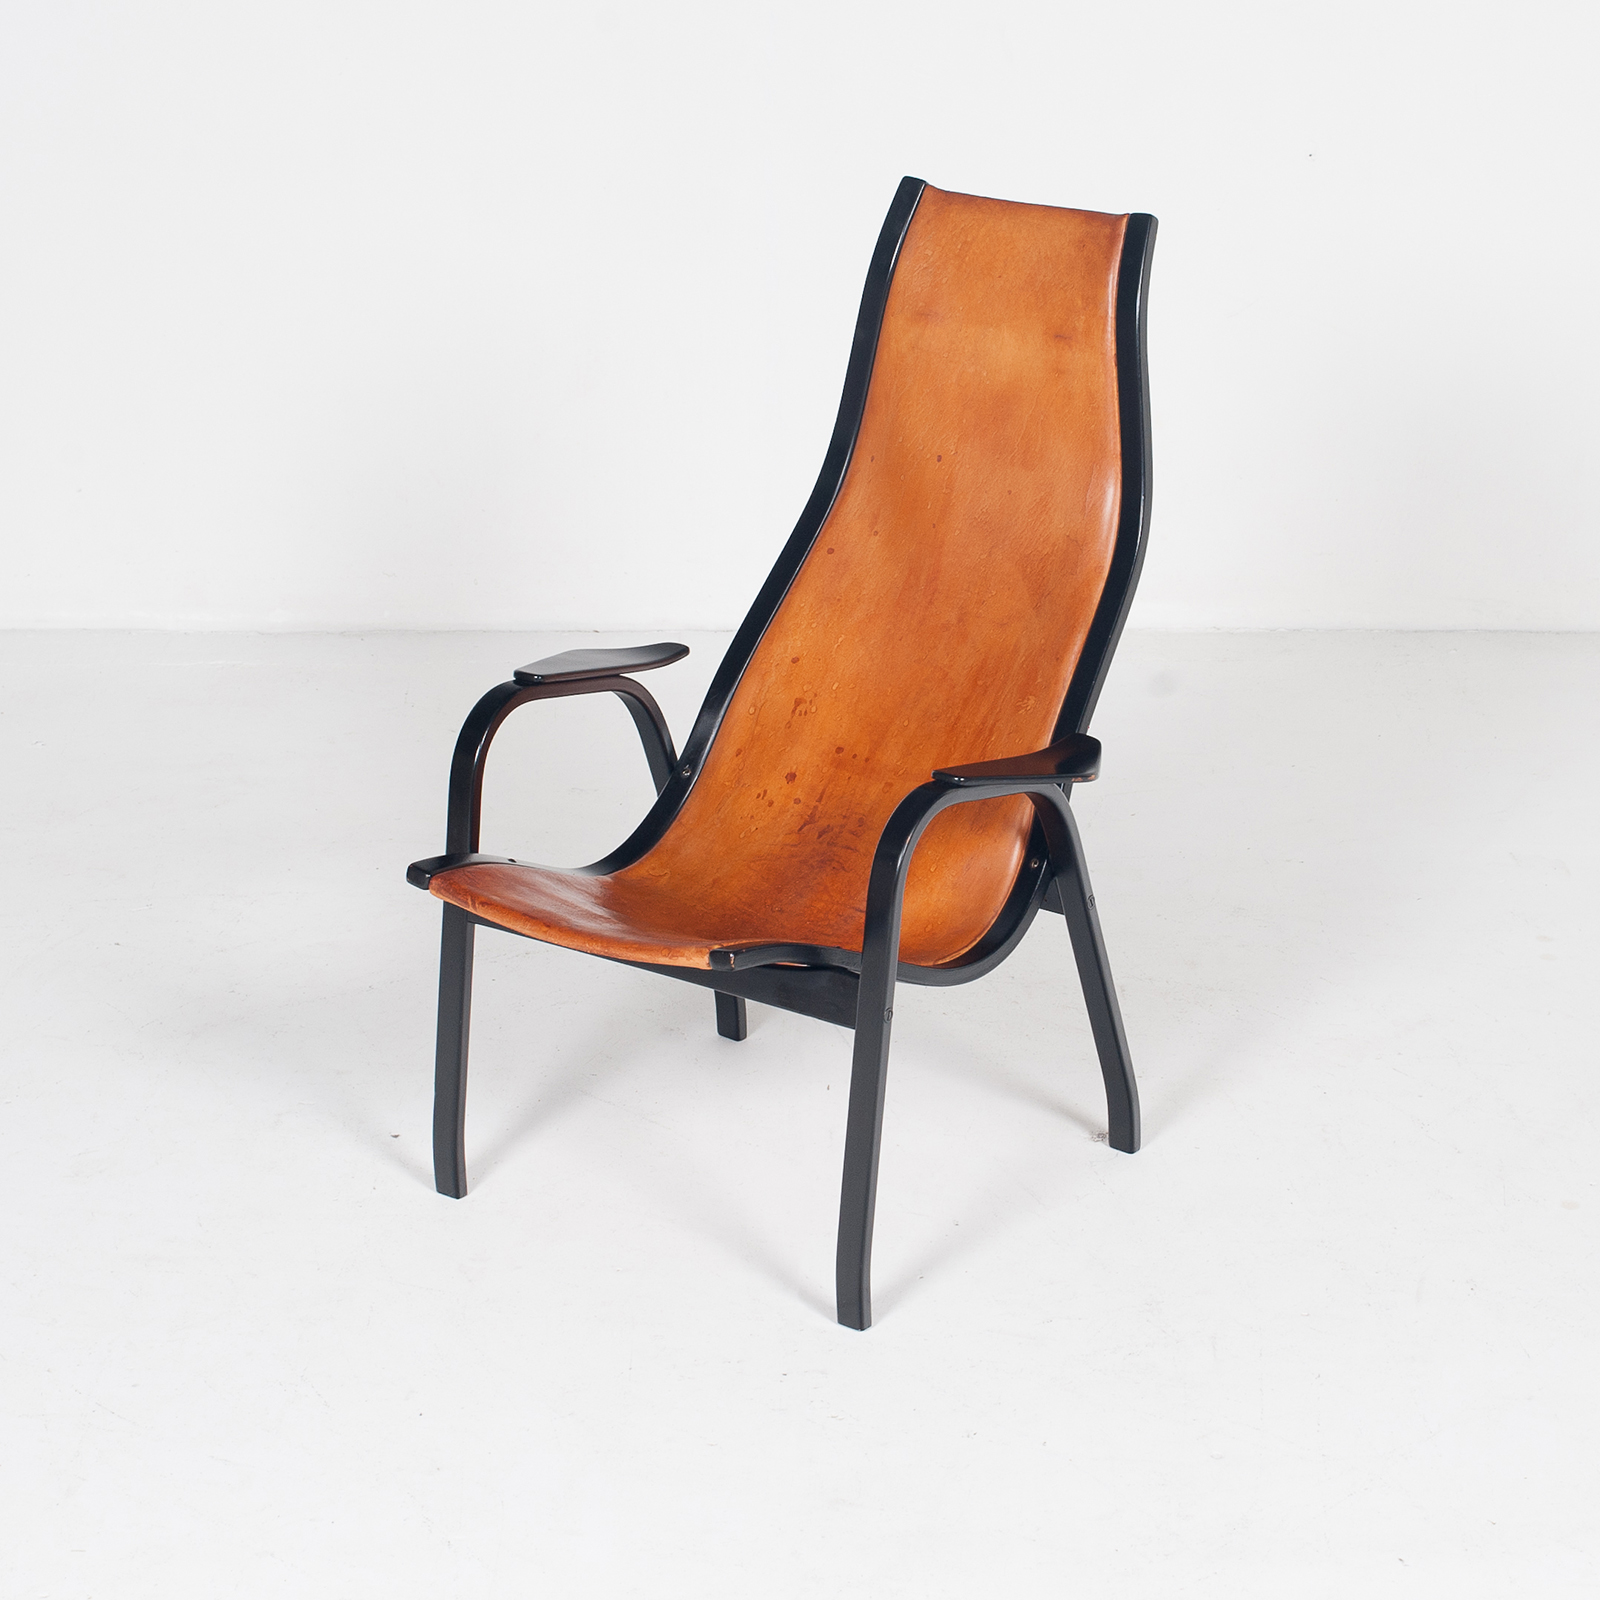 Kurva Lounge Chair By Yngve Ekstrom For Swedese In Tan Leather, 1950s, Sweden 33